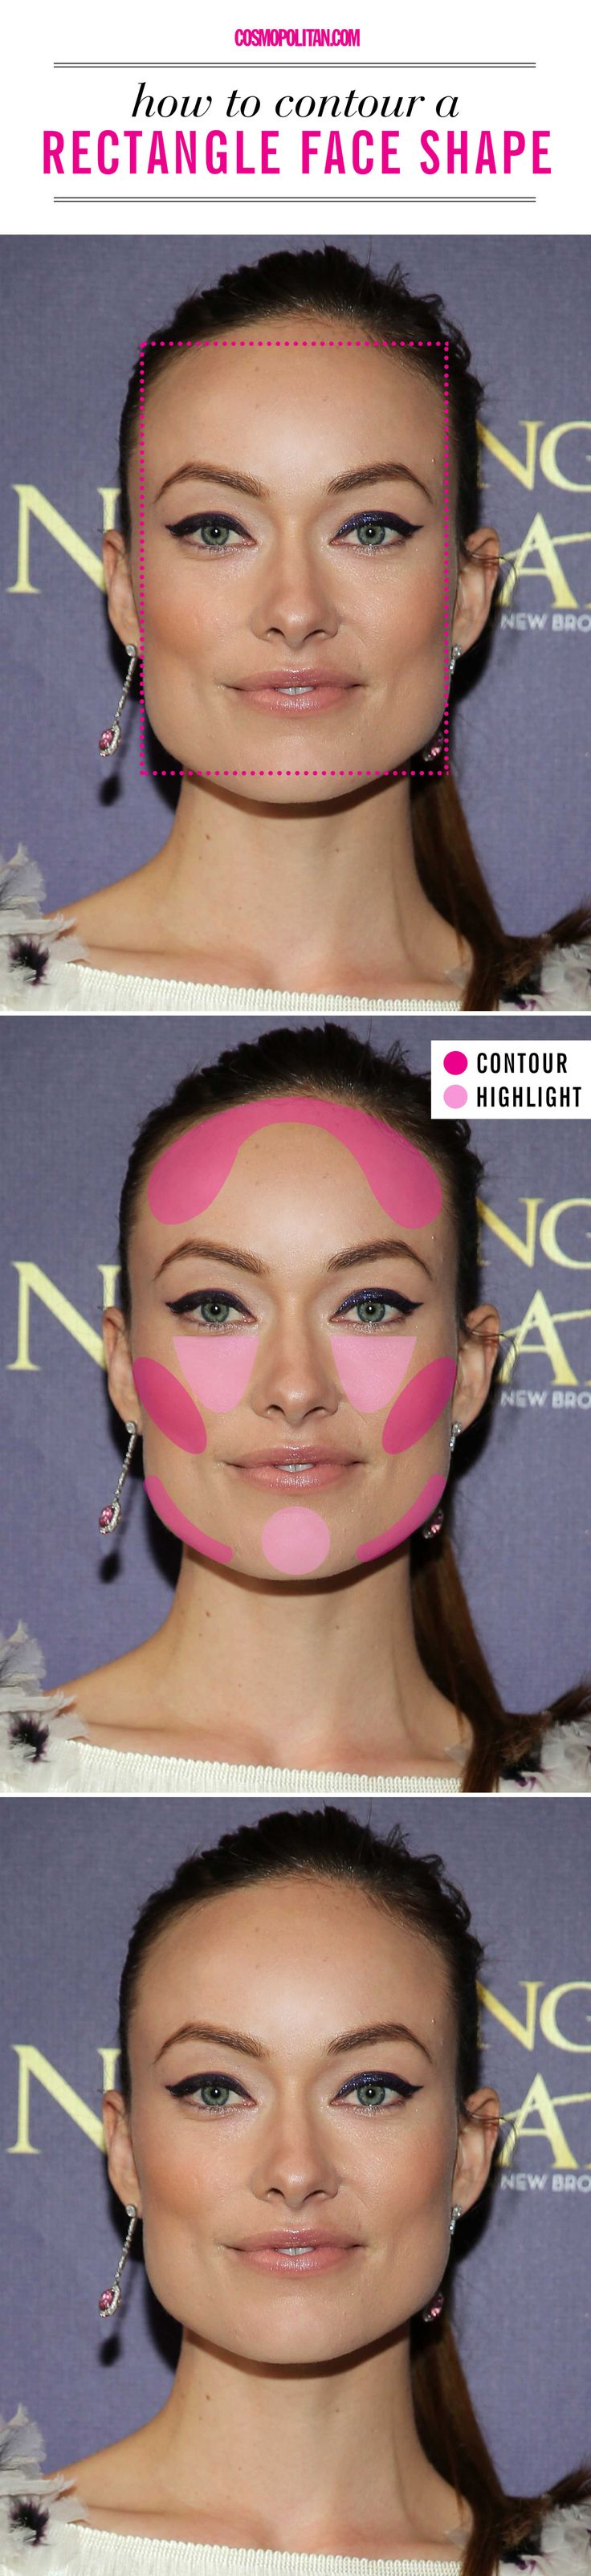 How to contour if you have a rectangle face shape.